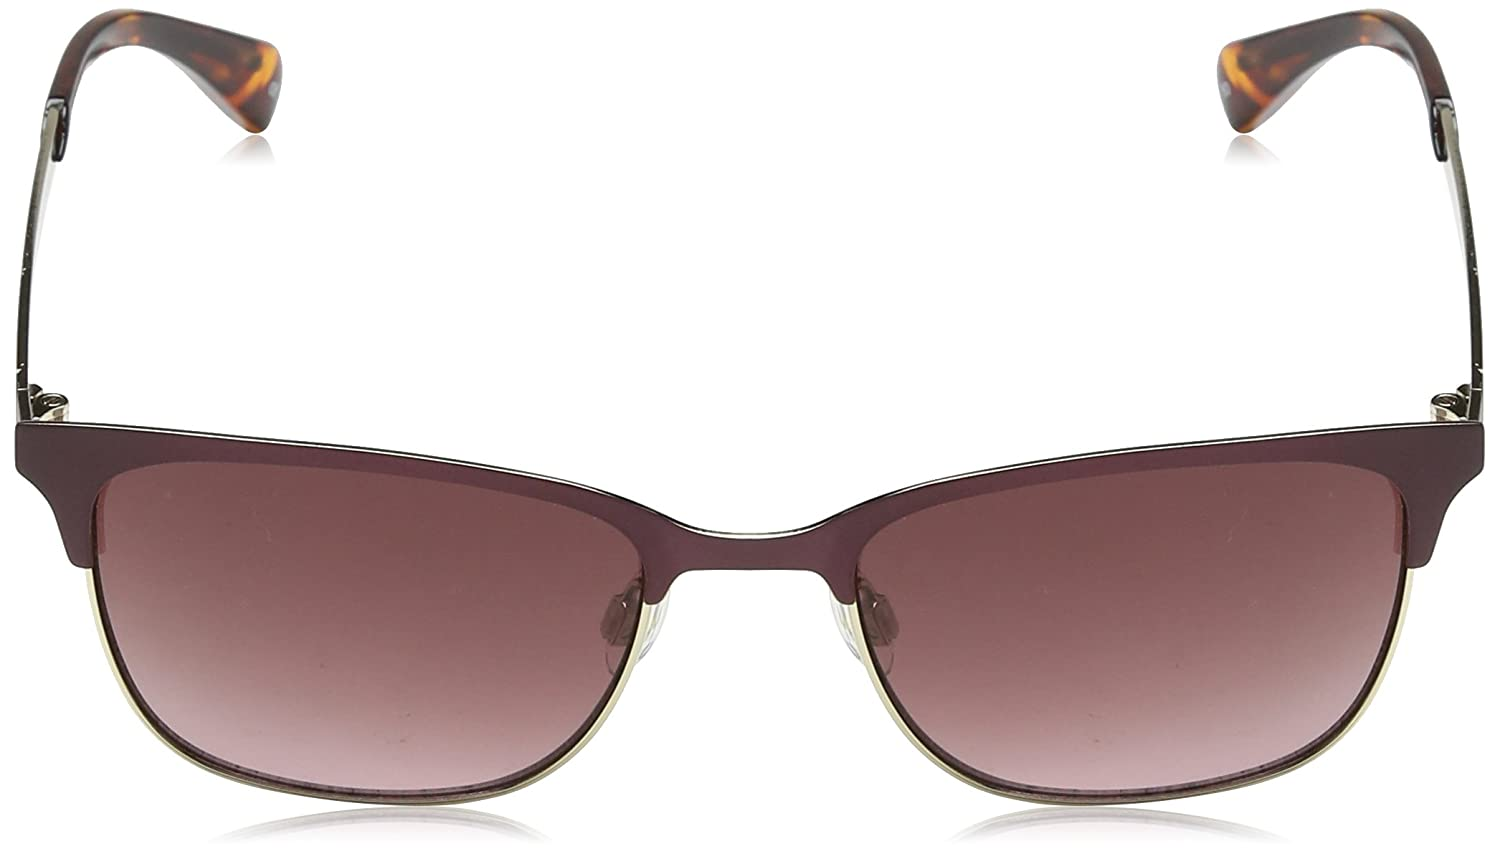 Womens Km700570253 Sunglasses, Plum, 53 Karen Millen